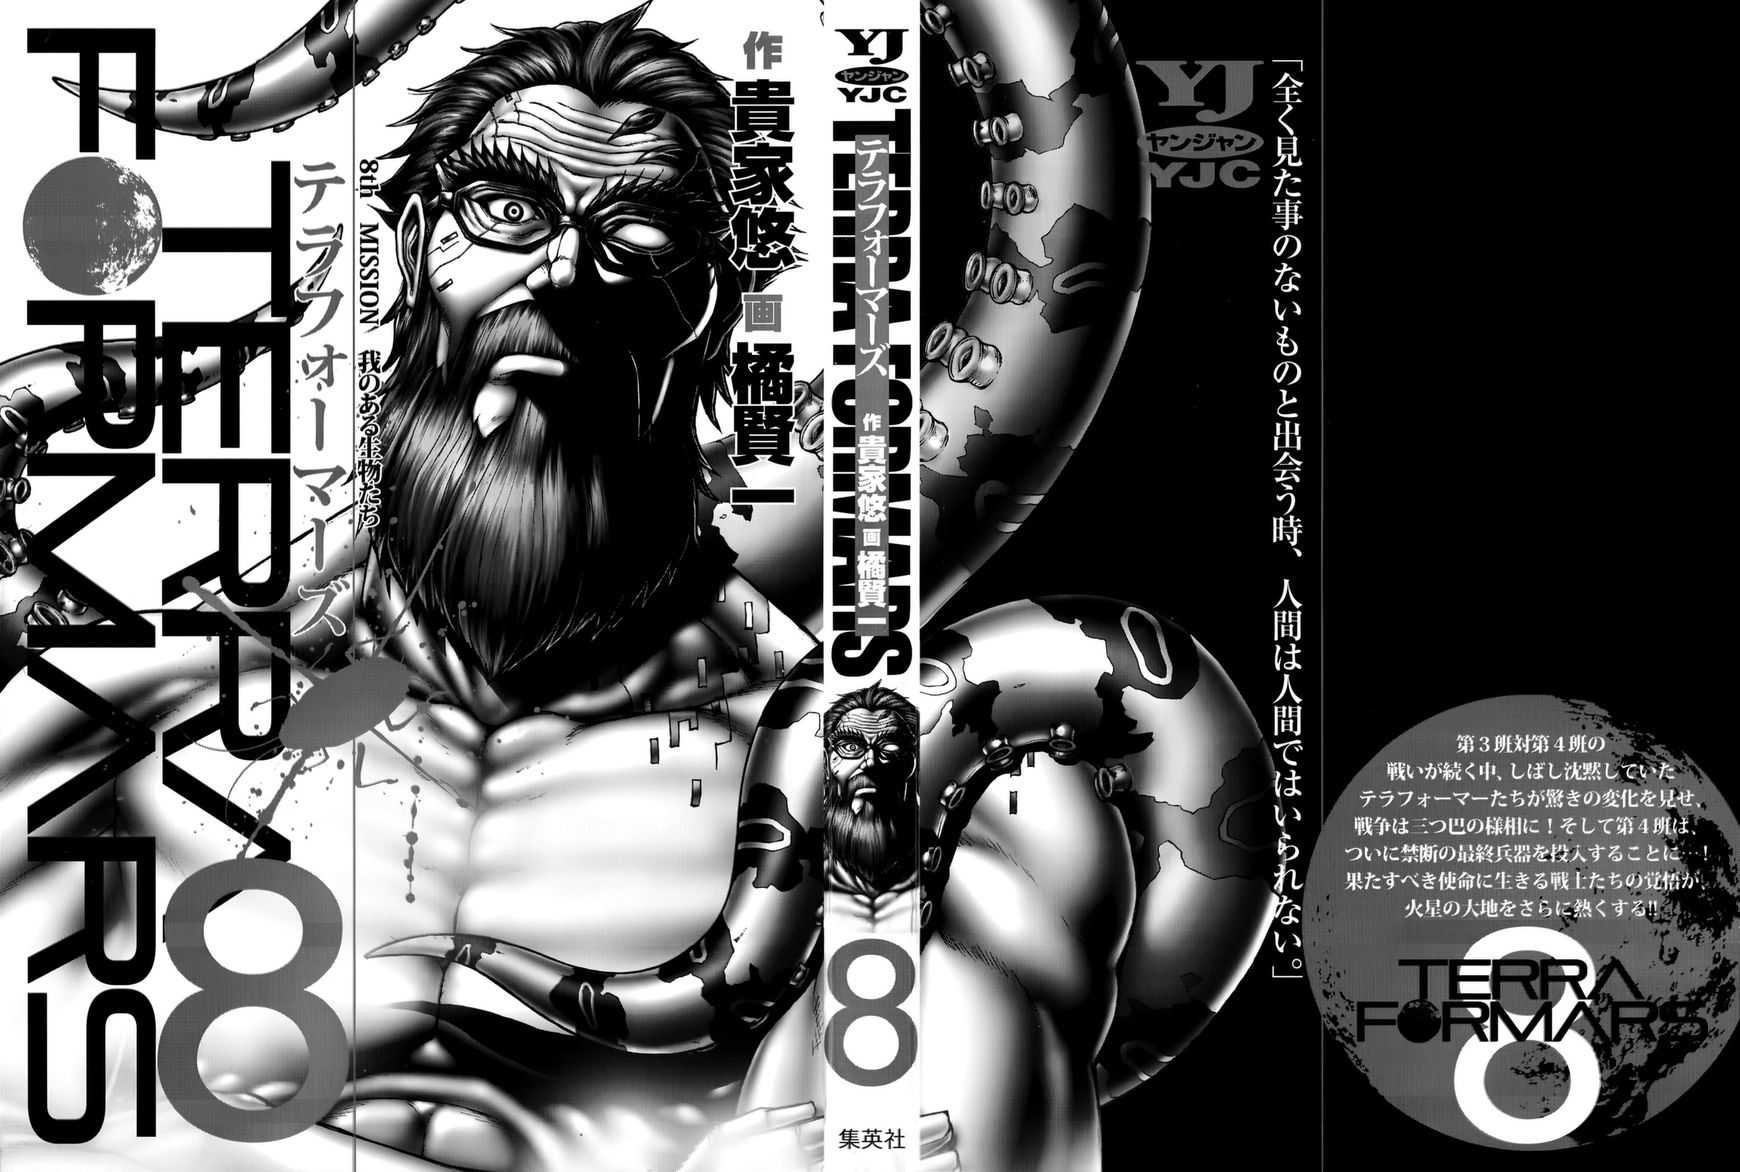 Terra Formars 64 Page 2